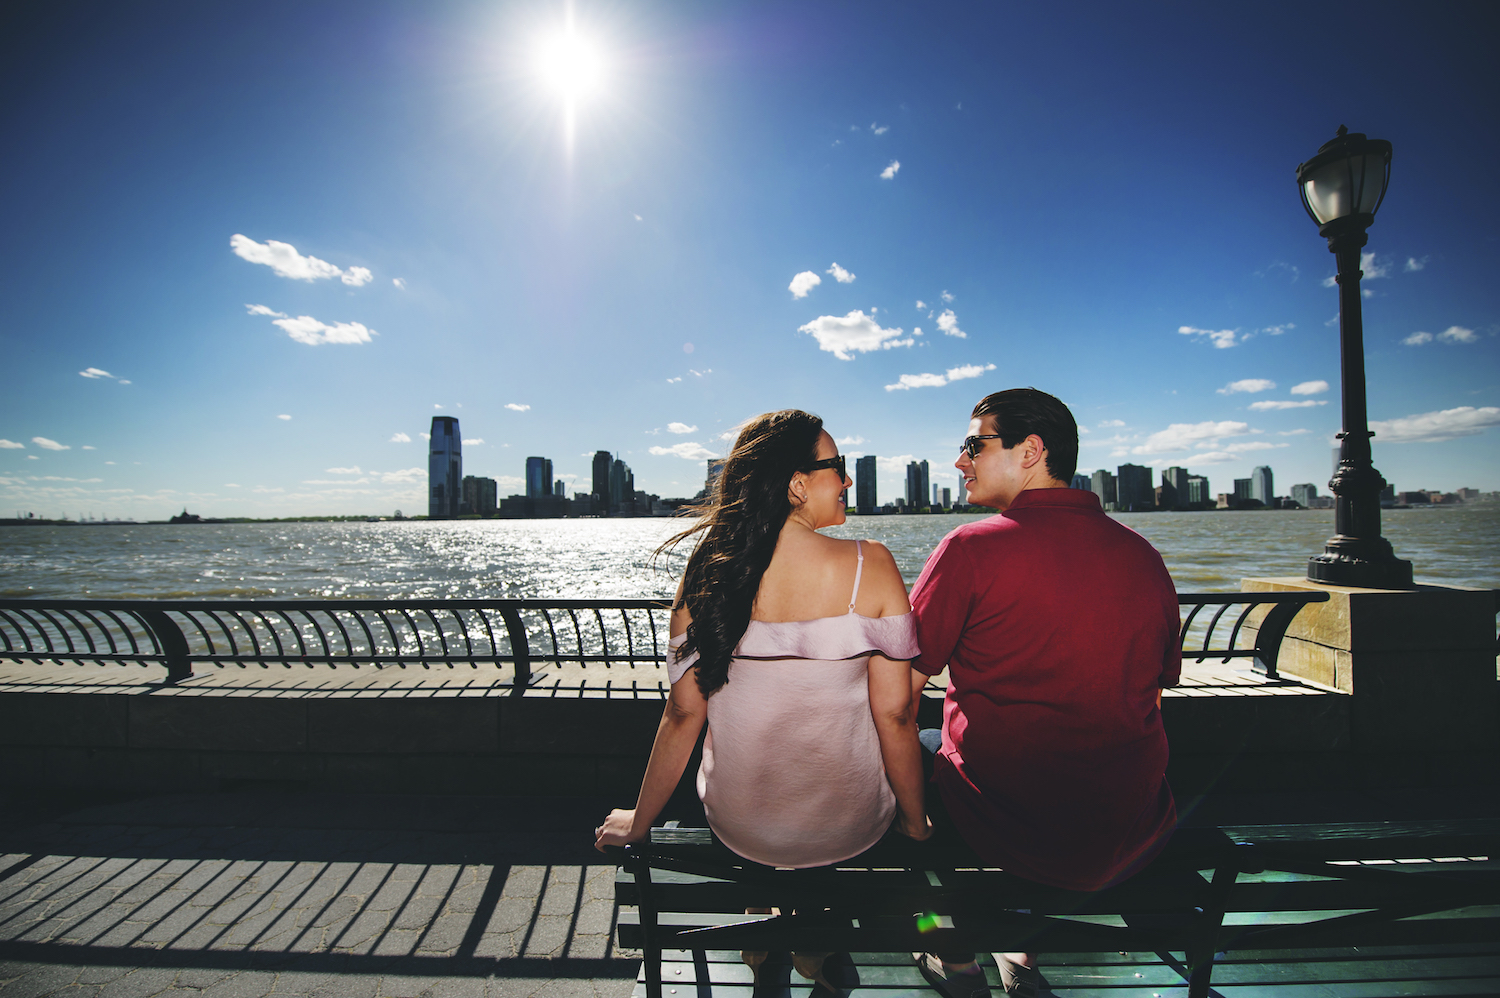 clarissa&jesse-sitting-bench-in-sunglasses-nyc-engagement-photos